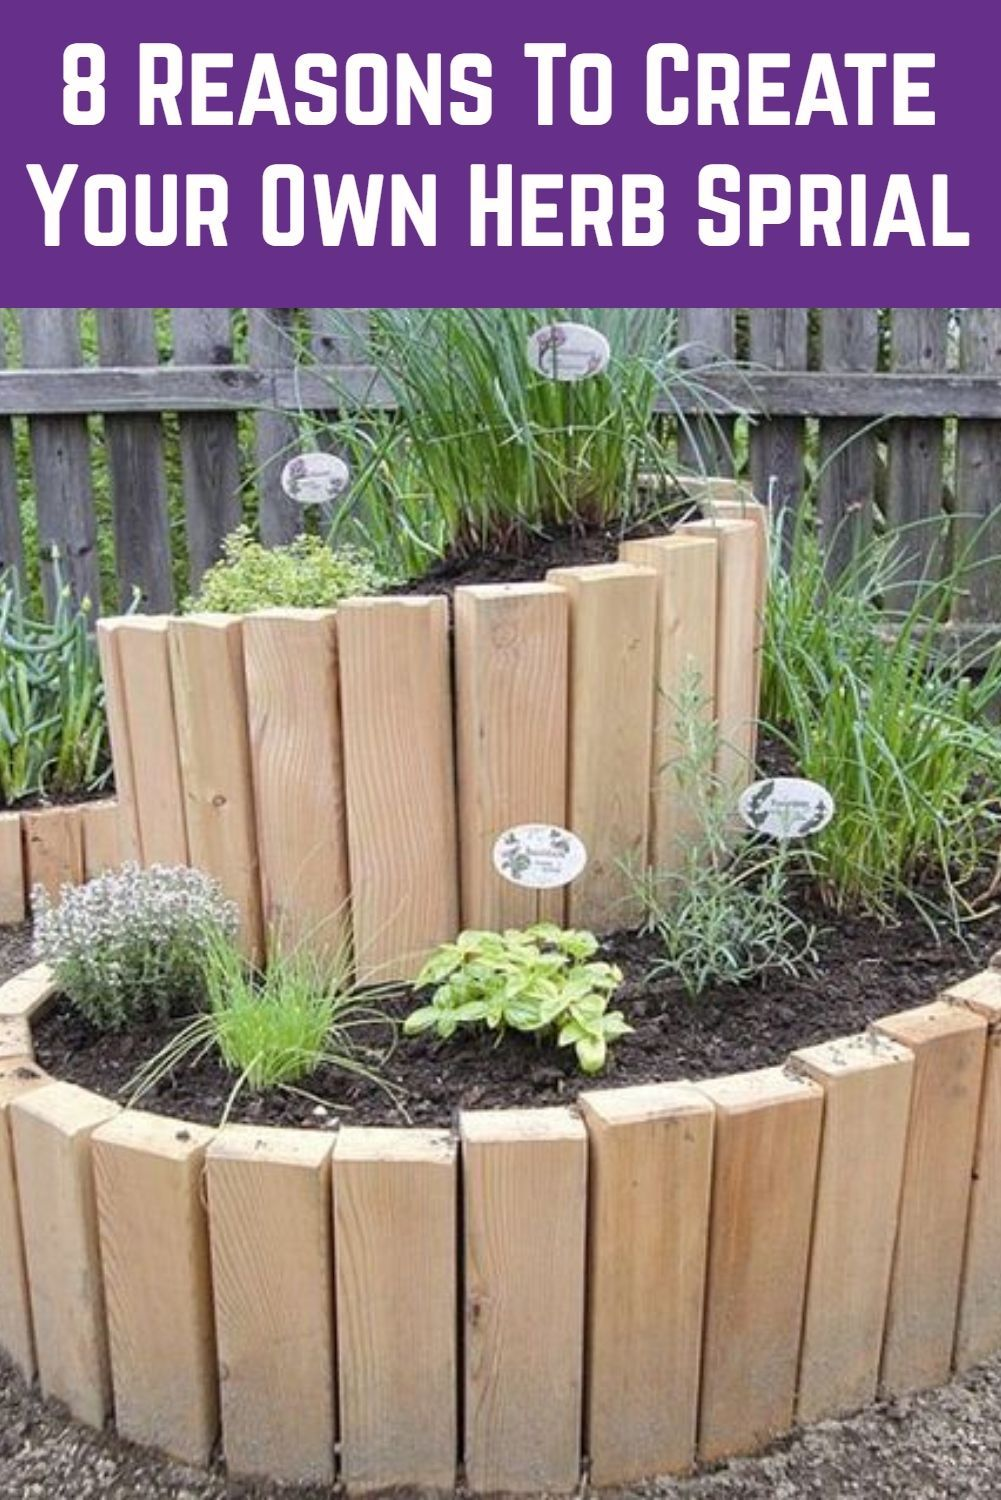 8 Reasons To Create Your Own Herb Spiral + How To Build One is part of Small vegetable gardens, Spiral garden, Vegetable garden raised beds, Front yard garden design, Diy raised garden, Pallets garden - Establishing a backyard herb spiral lets you grow lots of herbs in a concentrated, visually pleasing way  Here are 8 benefits and how to get started